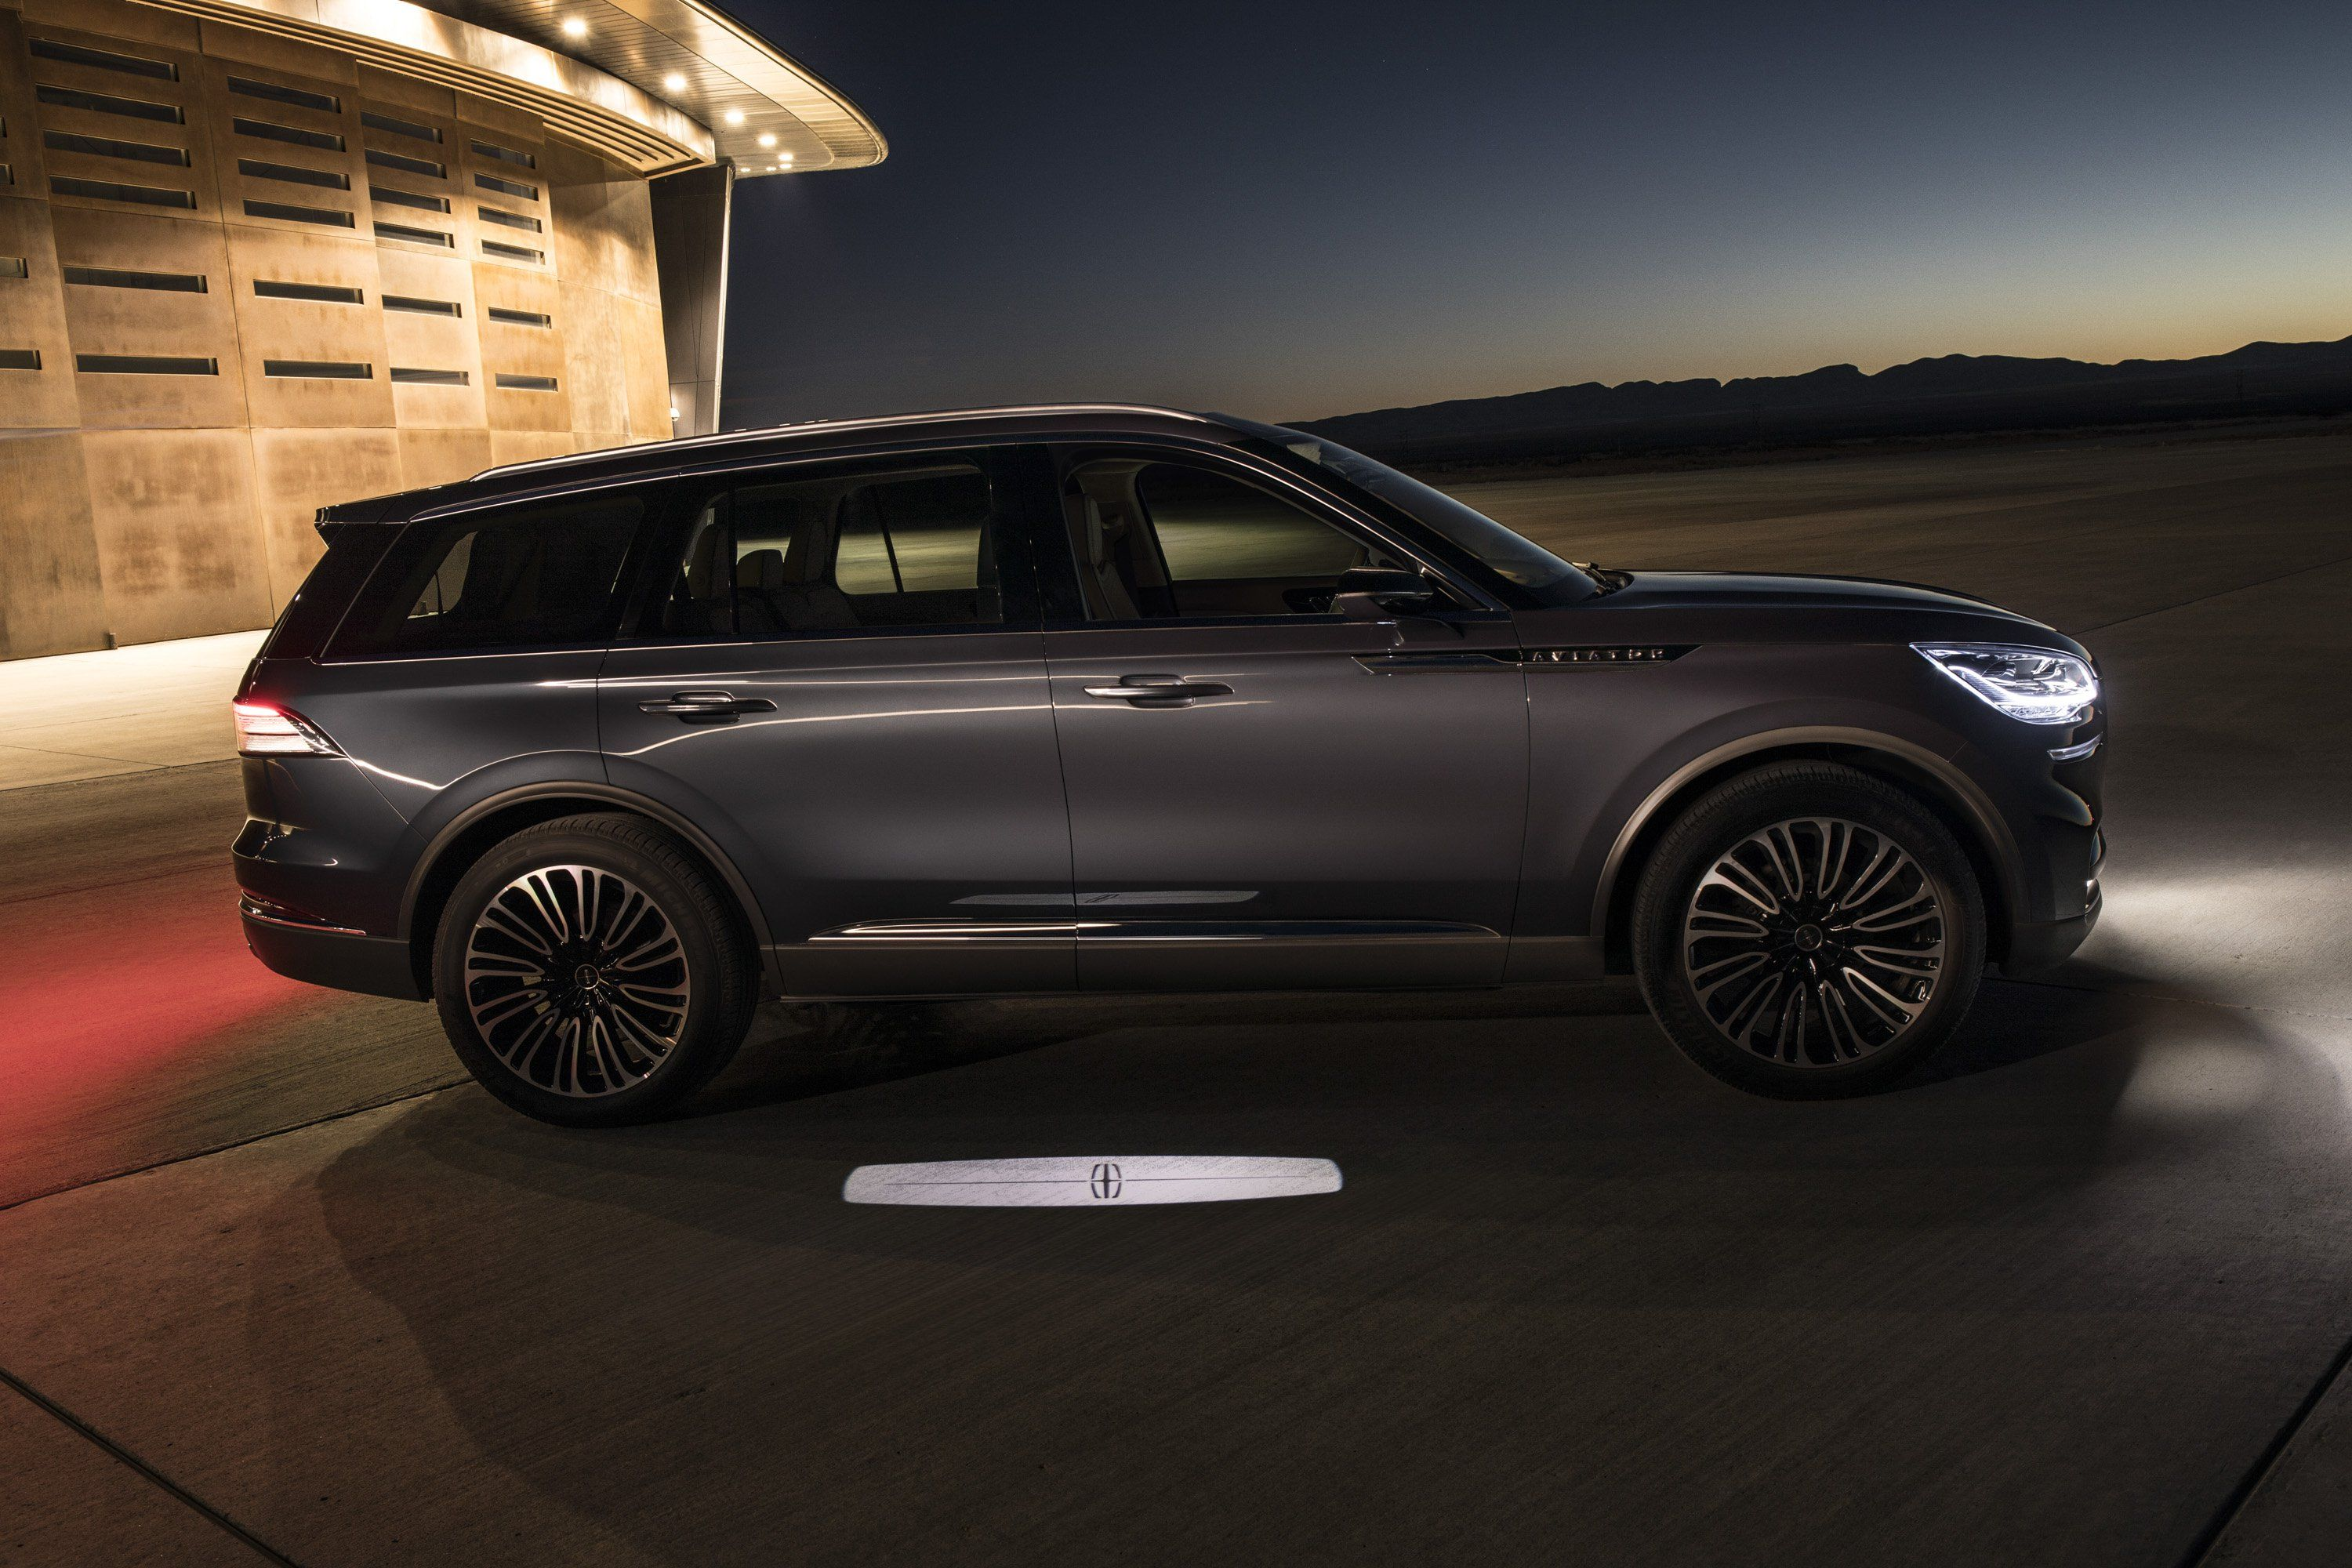 Lincoln Aviator Uses Detroit Symphony Orchestra Music As Warning